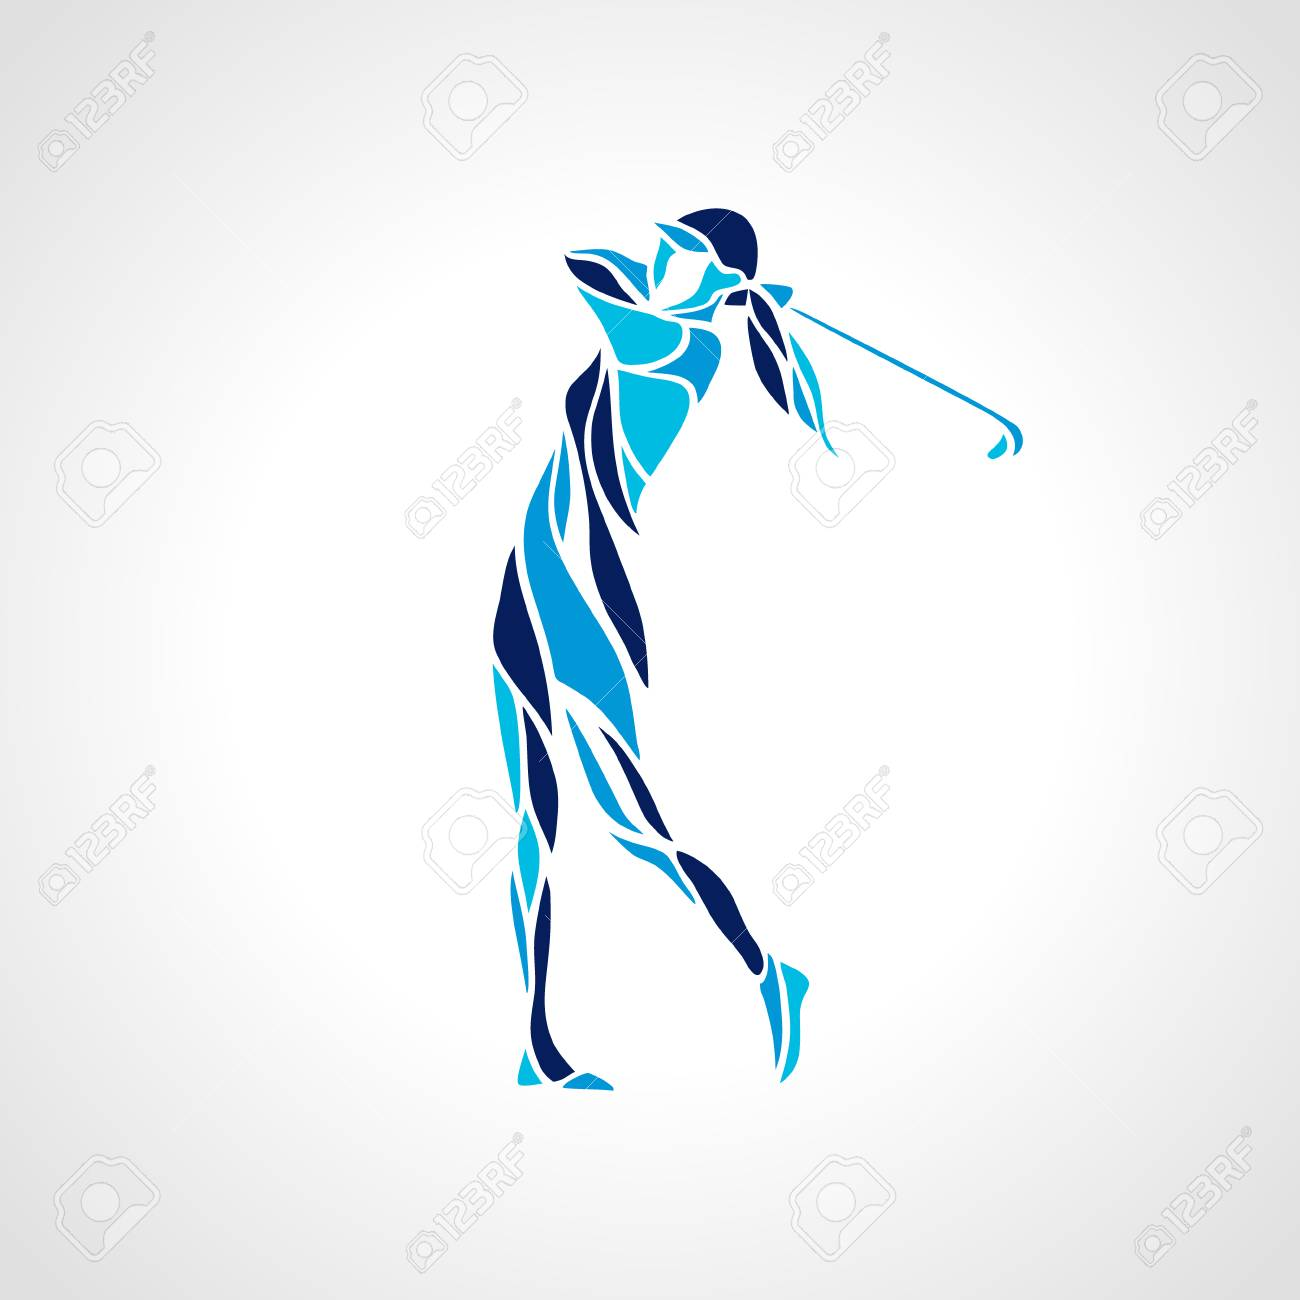 Silhouette of woman golf player in blue colors. Vector eps10. - 88754745